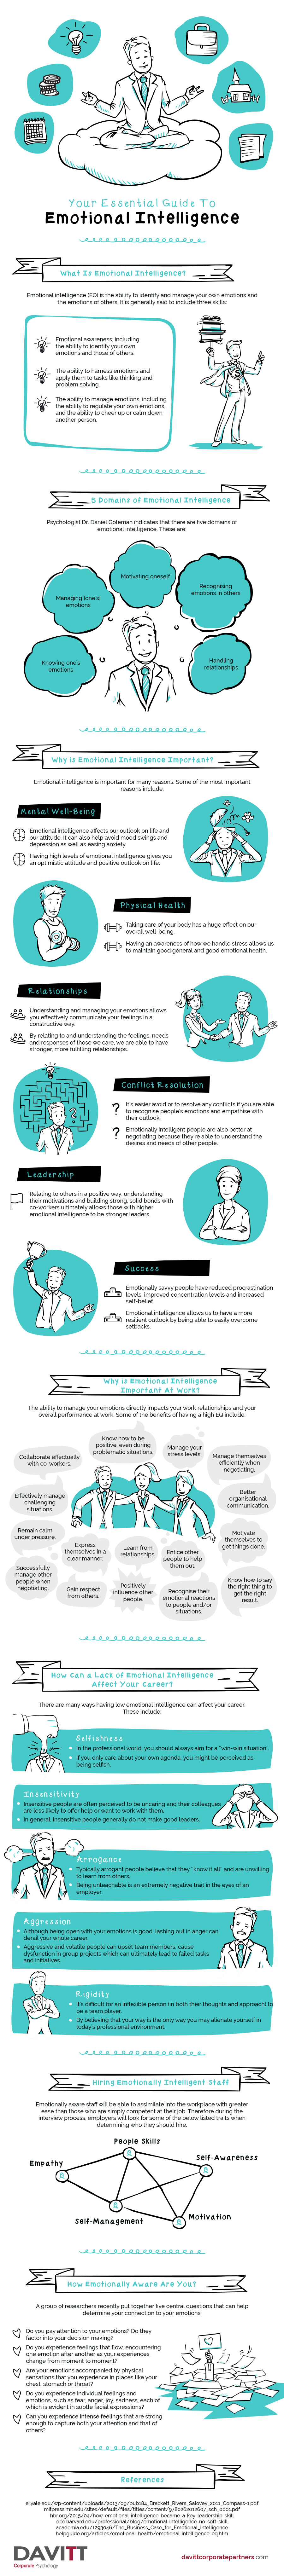 emotional-intelligence-what-you-need-to-know-infographic